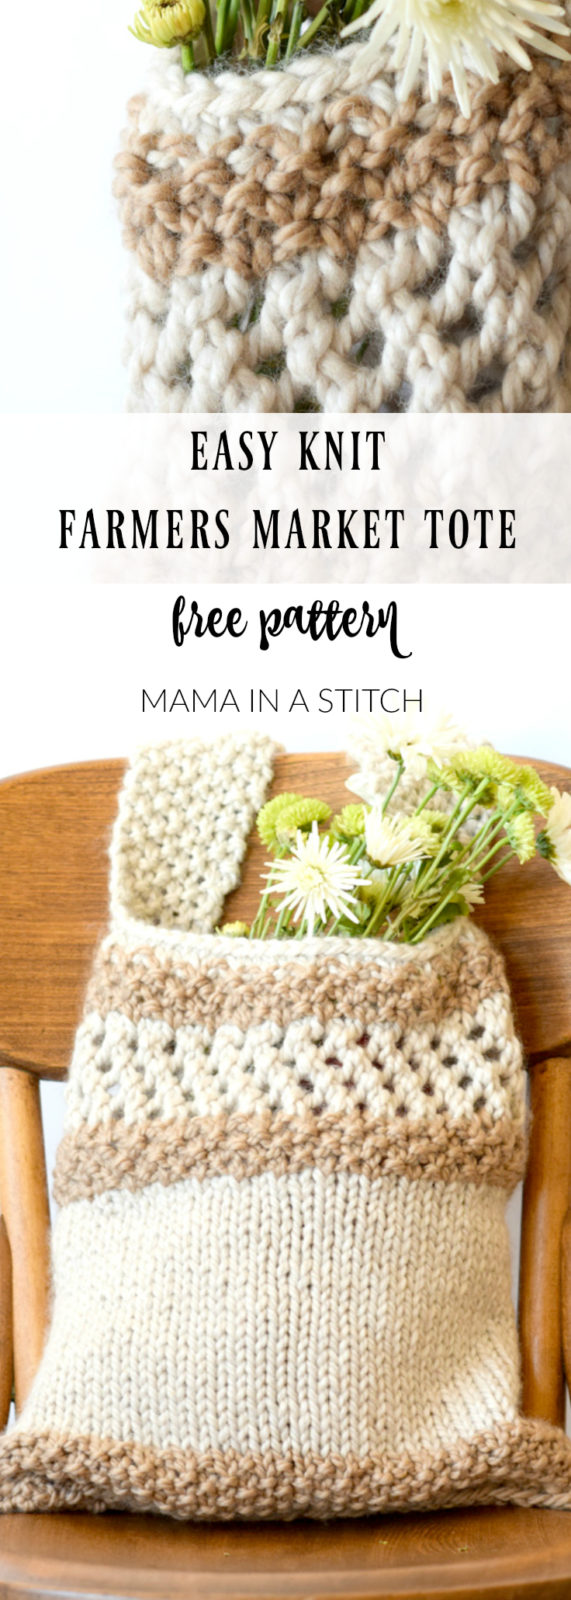 Knitting Pattern Farmers Market Tote - Mama In A Stitch